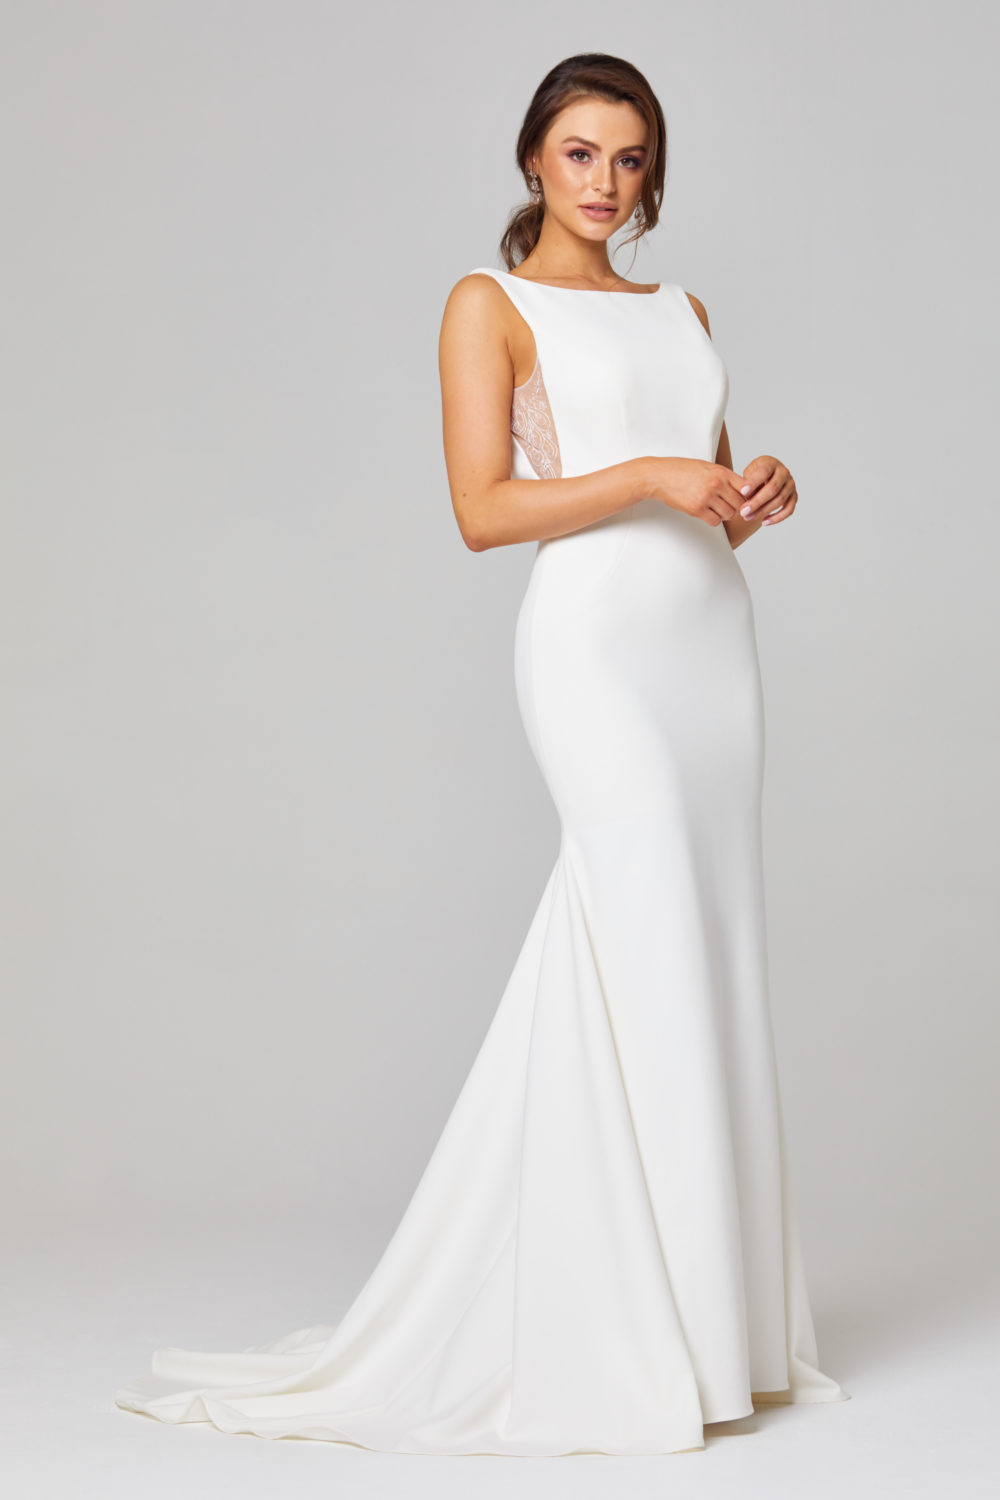 JEMMA HIGH NECK WEDDING DRESS - TC301-Side